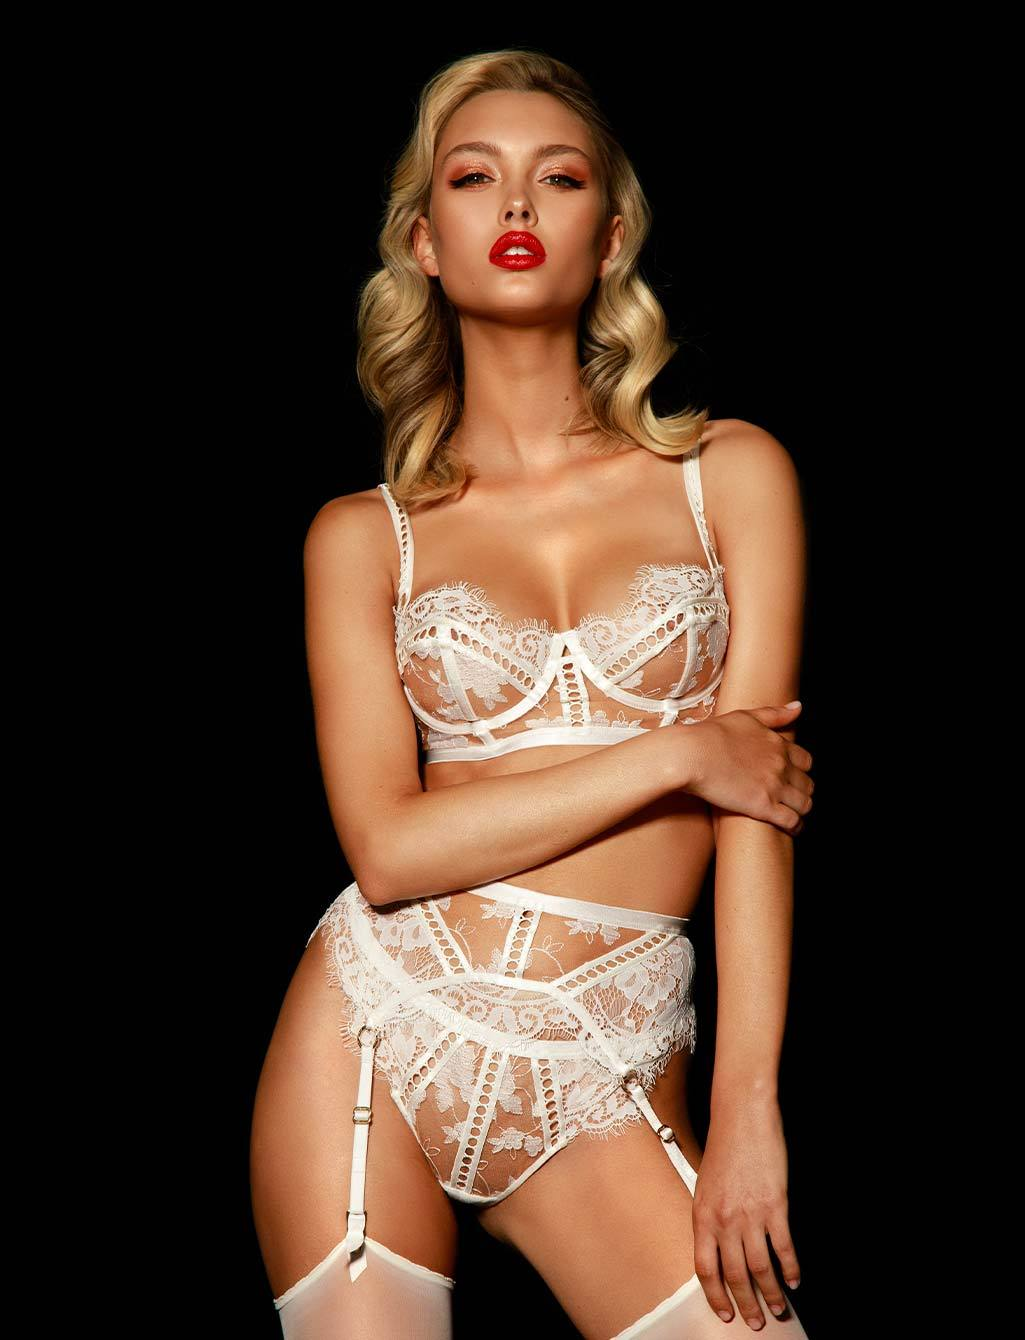 Molly Lace White Ivory Bridal Suspender | Shop  Lingerie Honey Birdette